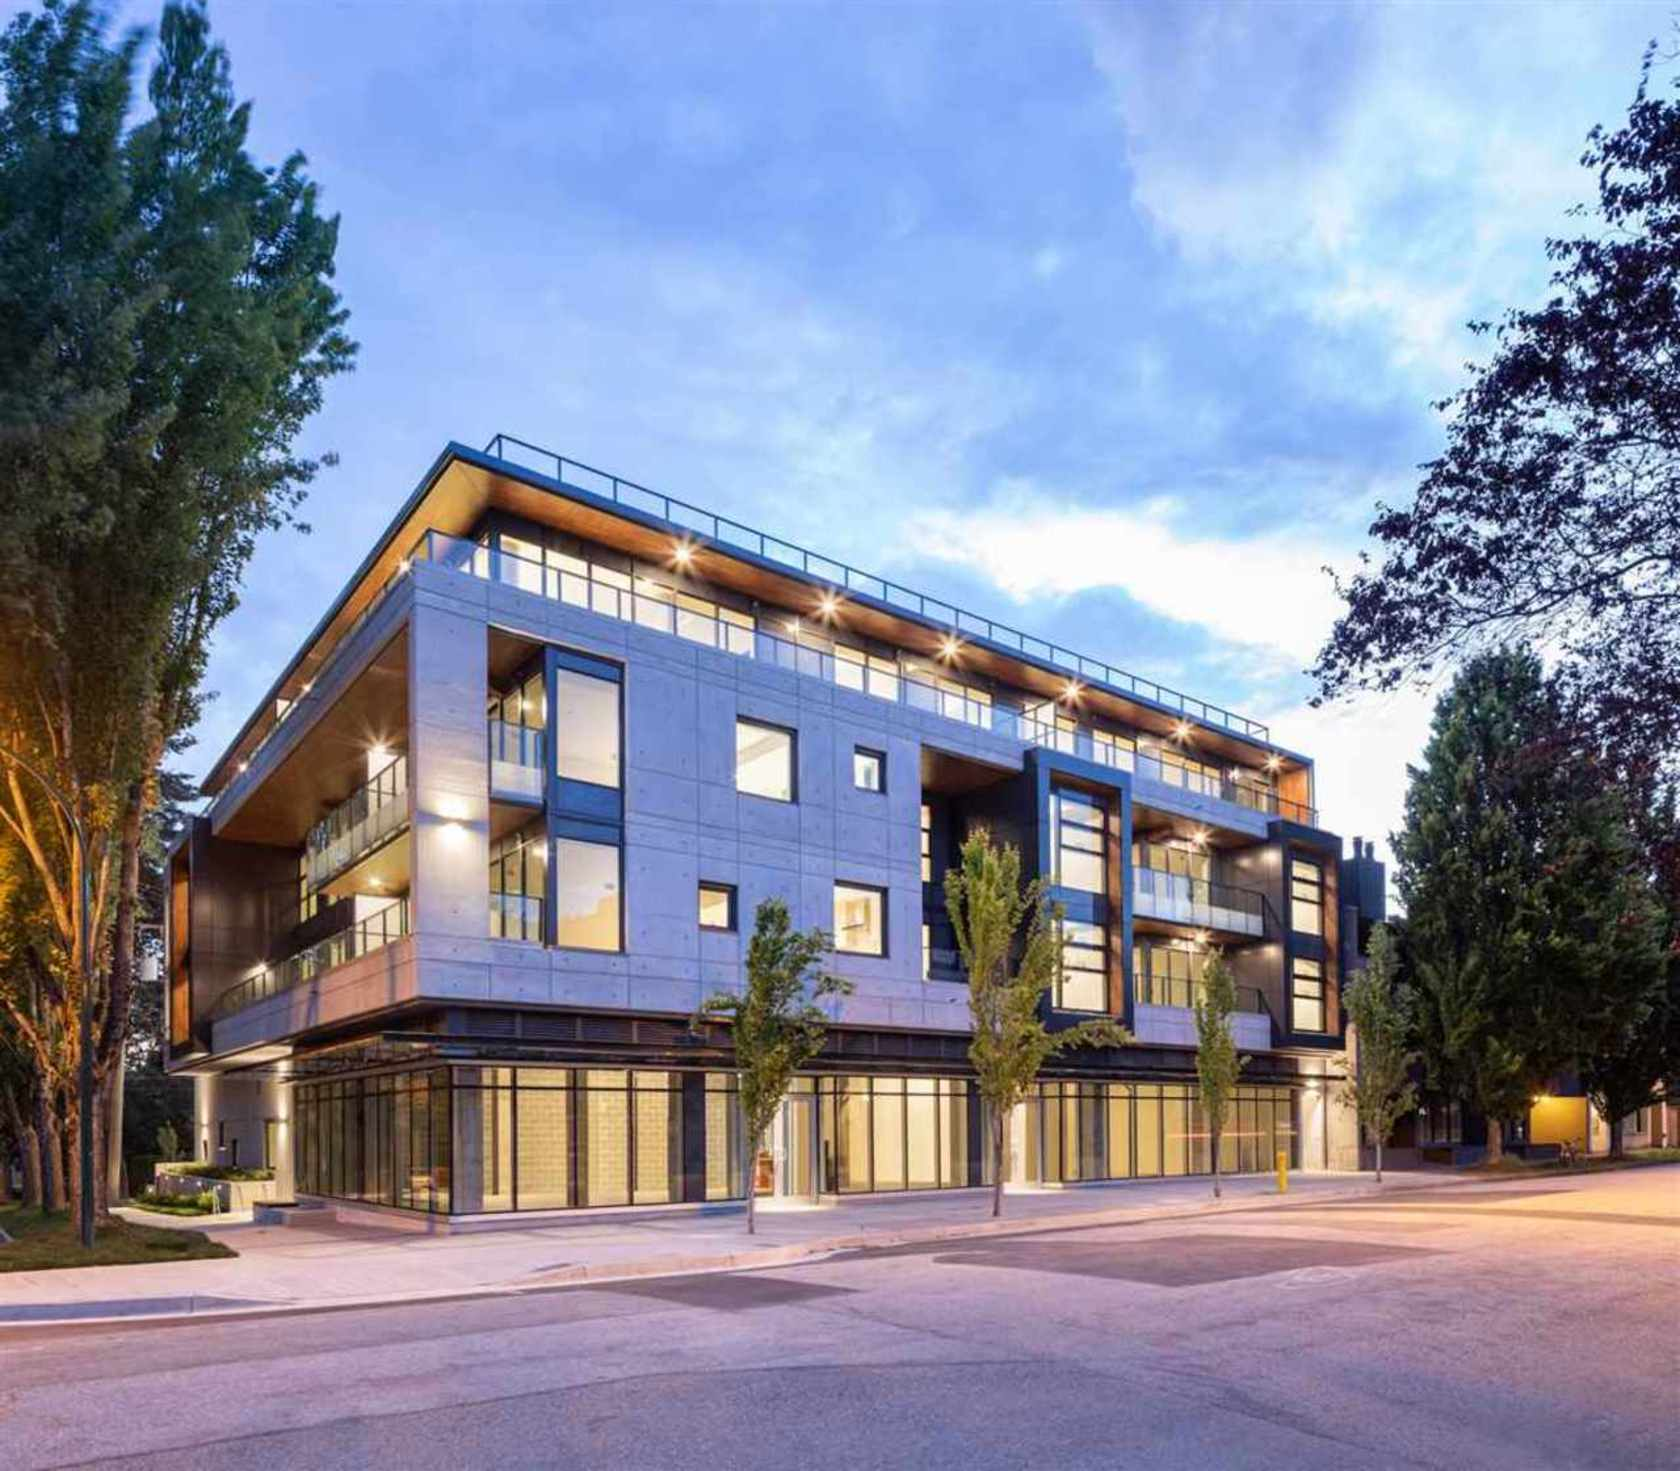 717-w-17-avenue-cambie-vancouver-west-28 at 305 - 717 W 17 Avenue, Cambie, Vancouver West